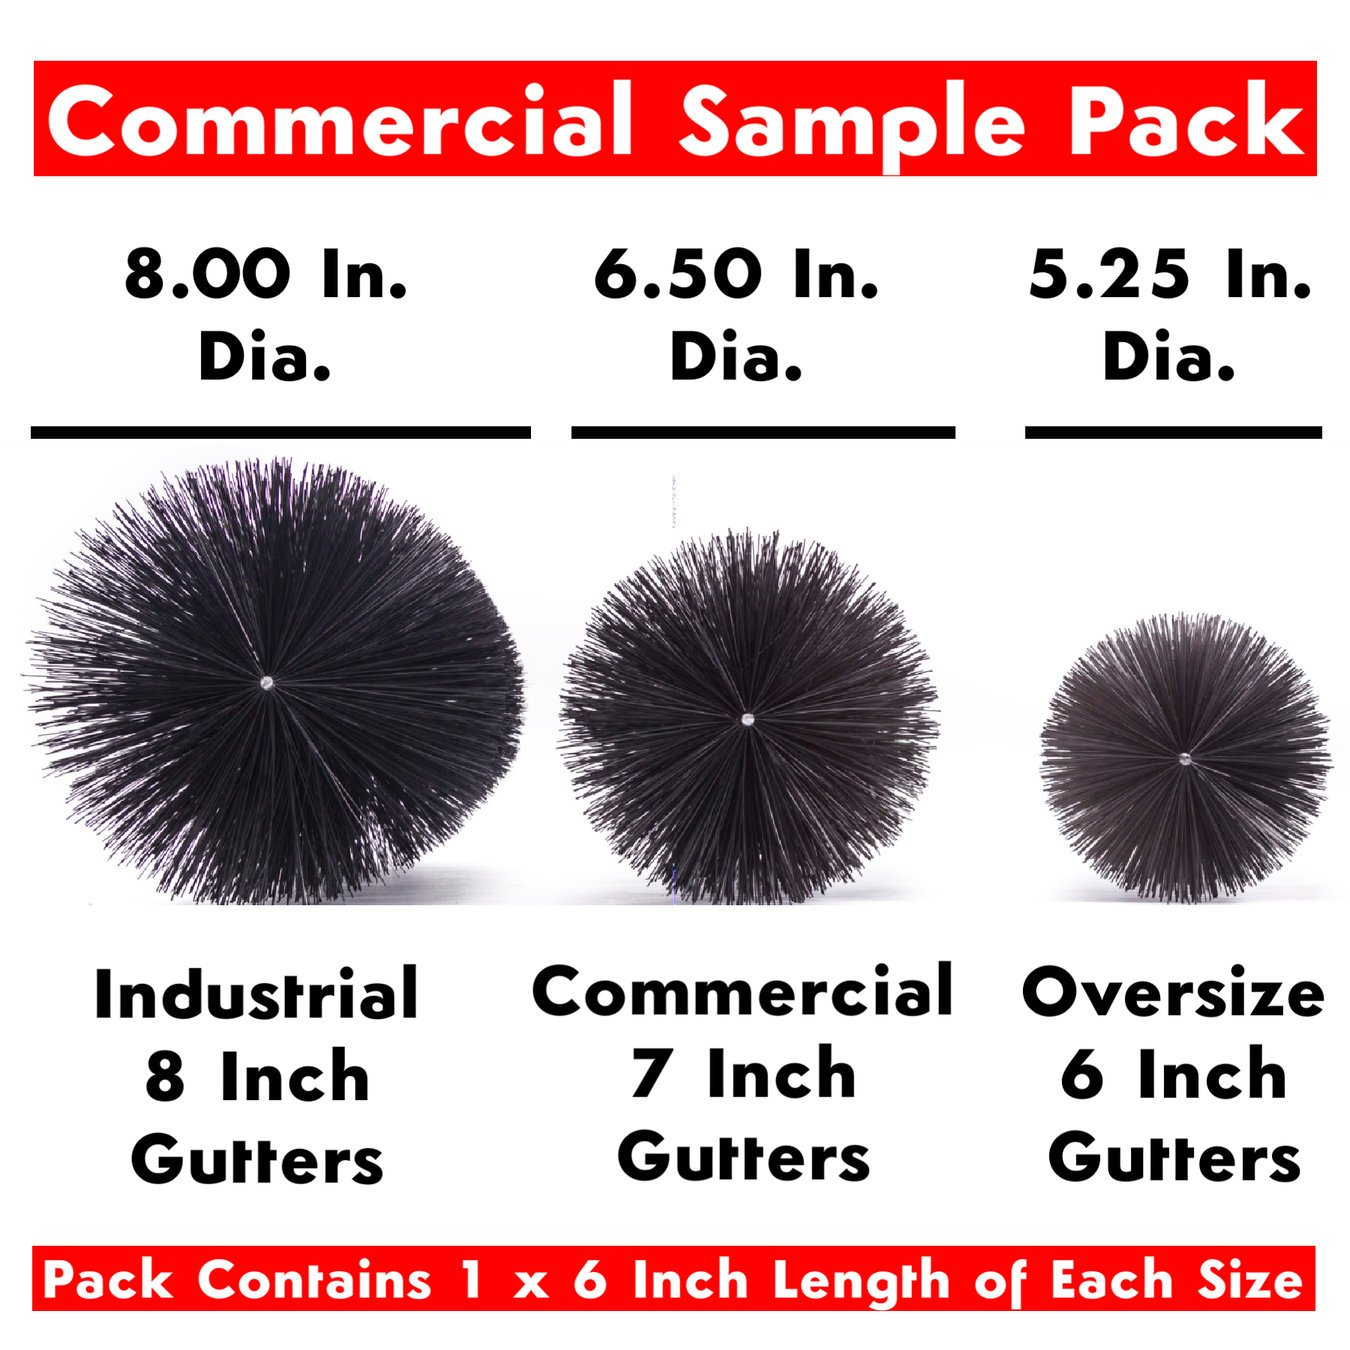 Free - Commercial Sample Pack - 8.00, 6.50, 5.25 Inch Diameter Brushes (Just Pay $9.95 Postage) - GutterBrush